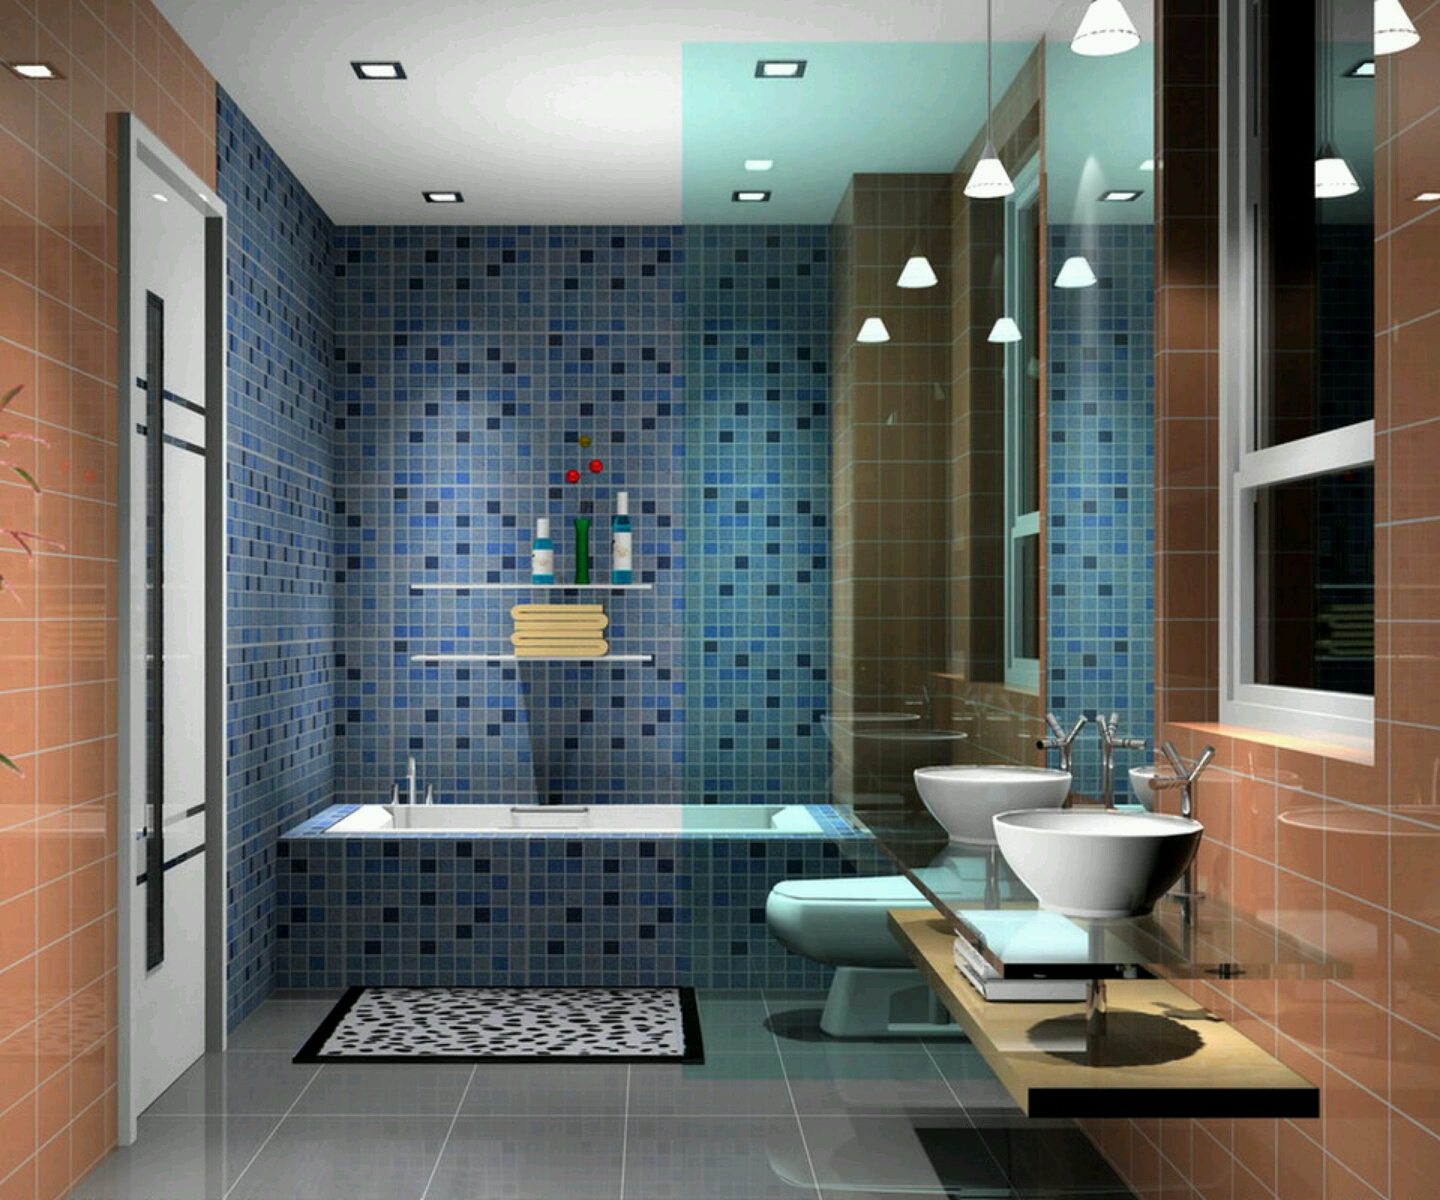 New home designs latest modern bathrooms best designs ideas for Pics of bathroom designs